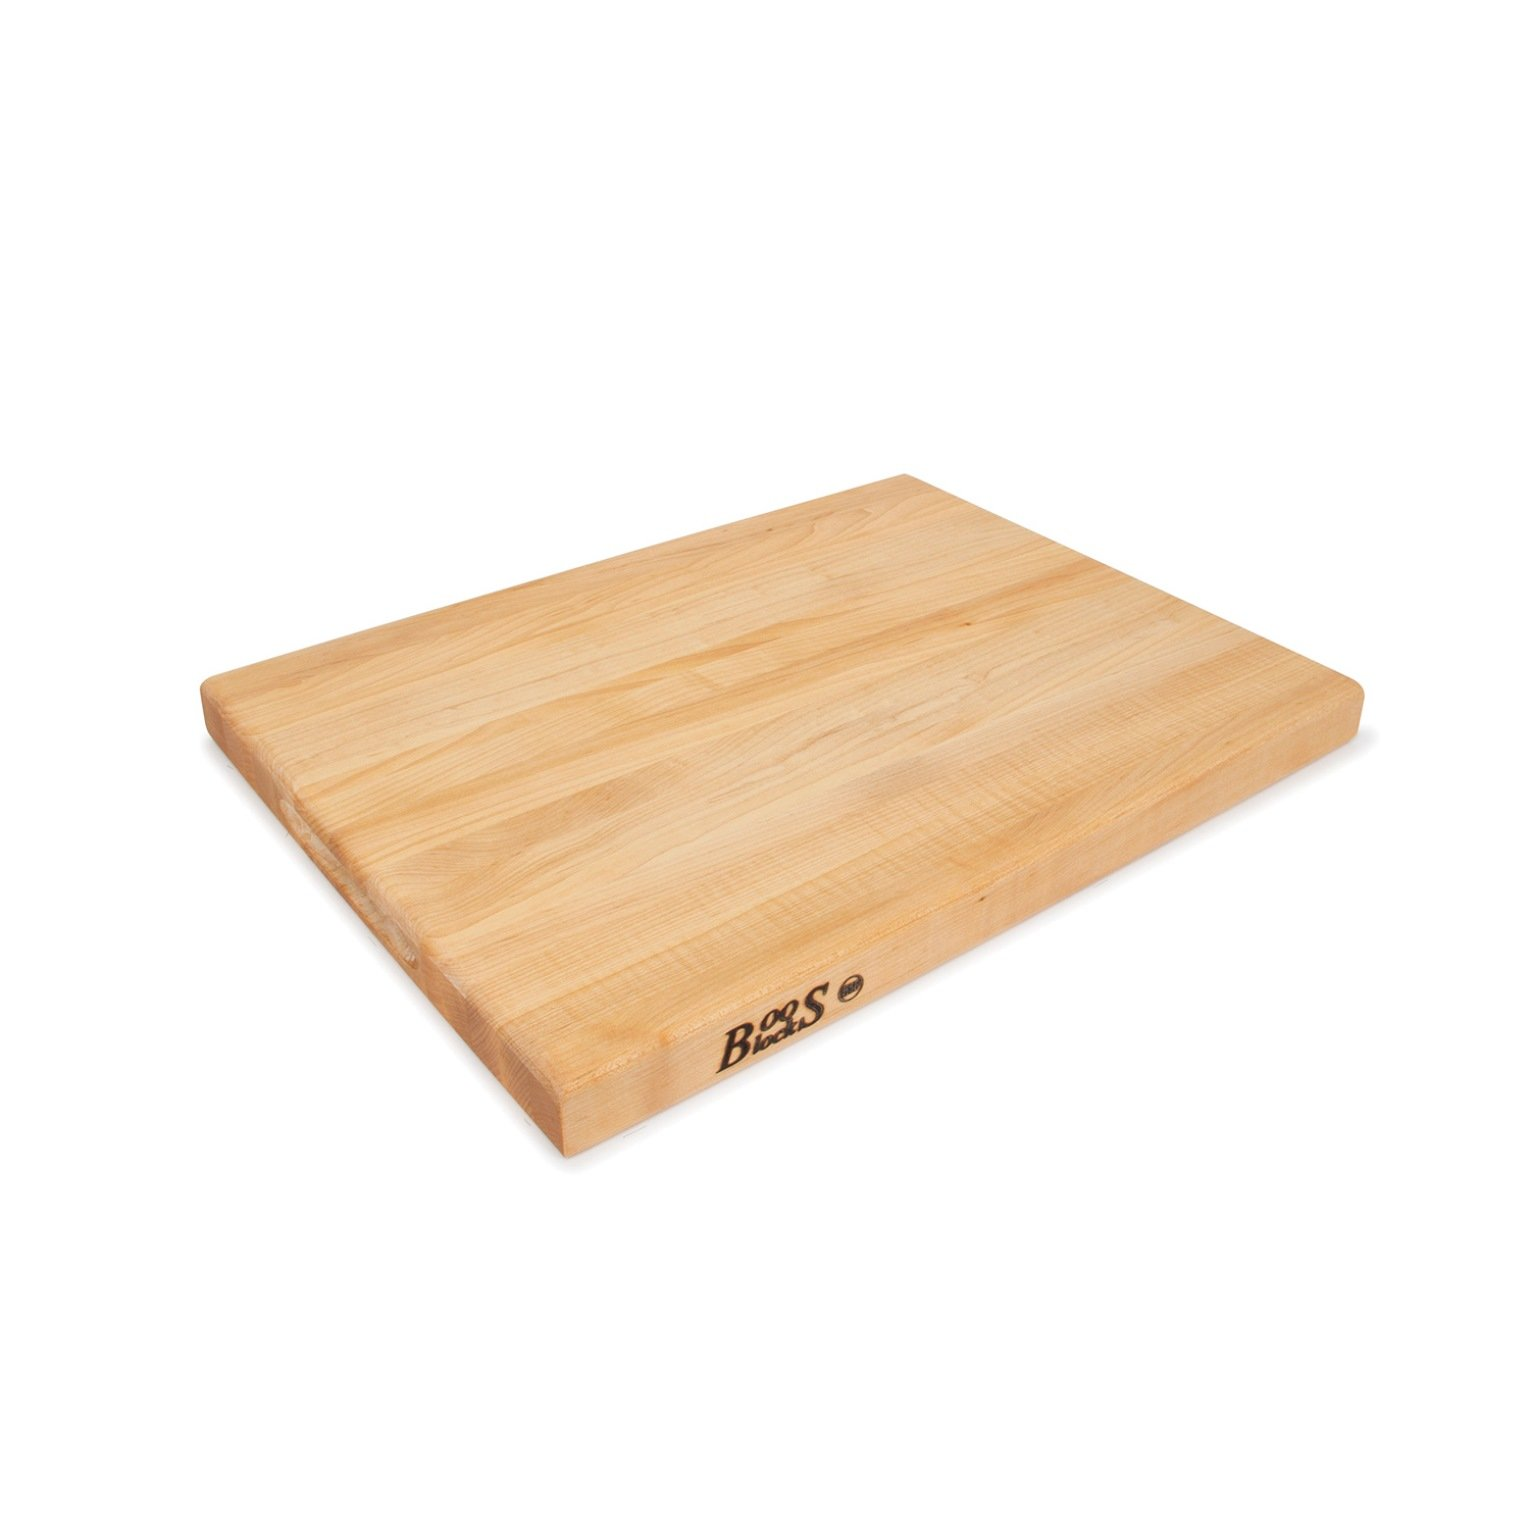 John Boos R03 Maple Wood Edge Grain Reversible Cutting Board, 20 Inches x 15 Inches x 1.5 Inches